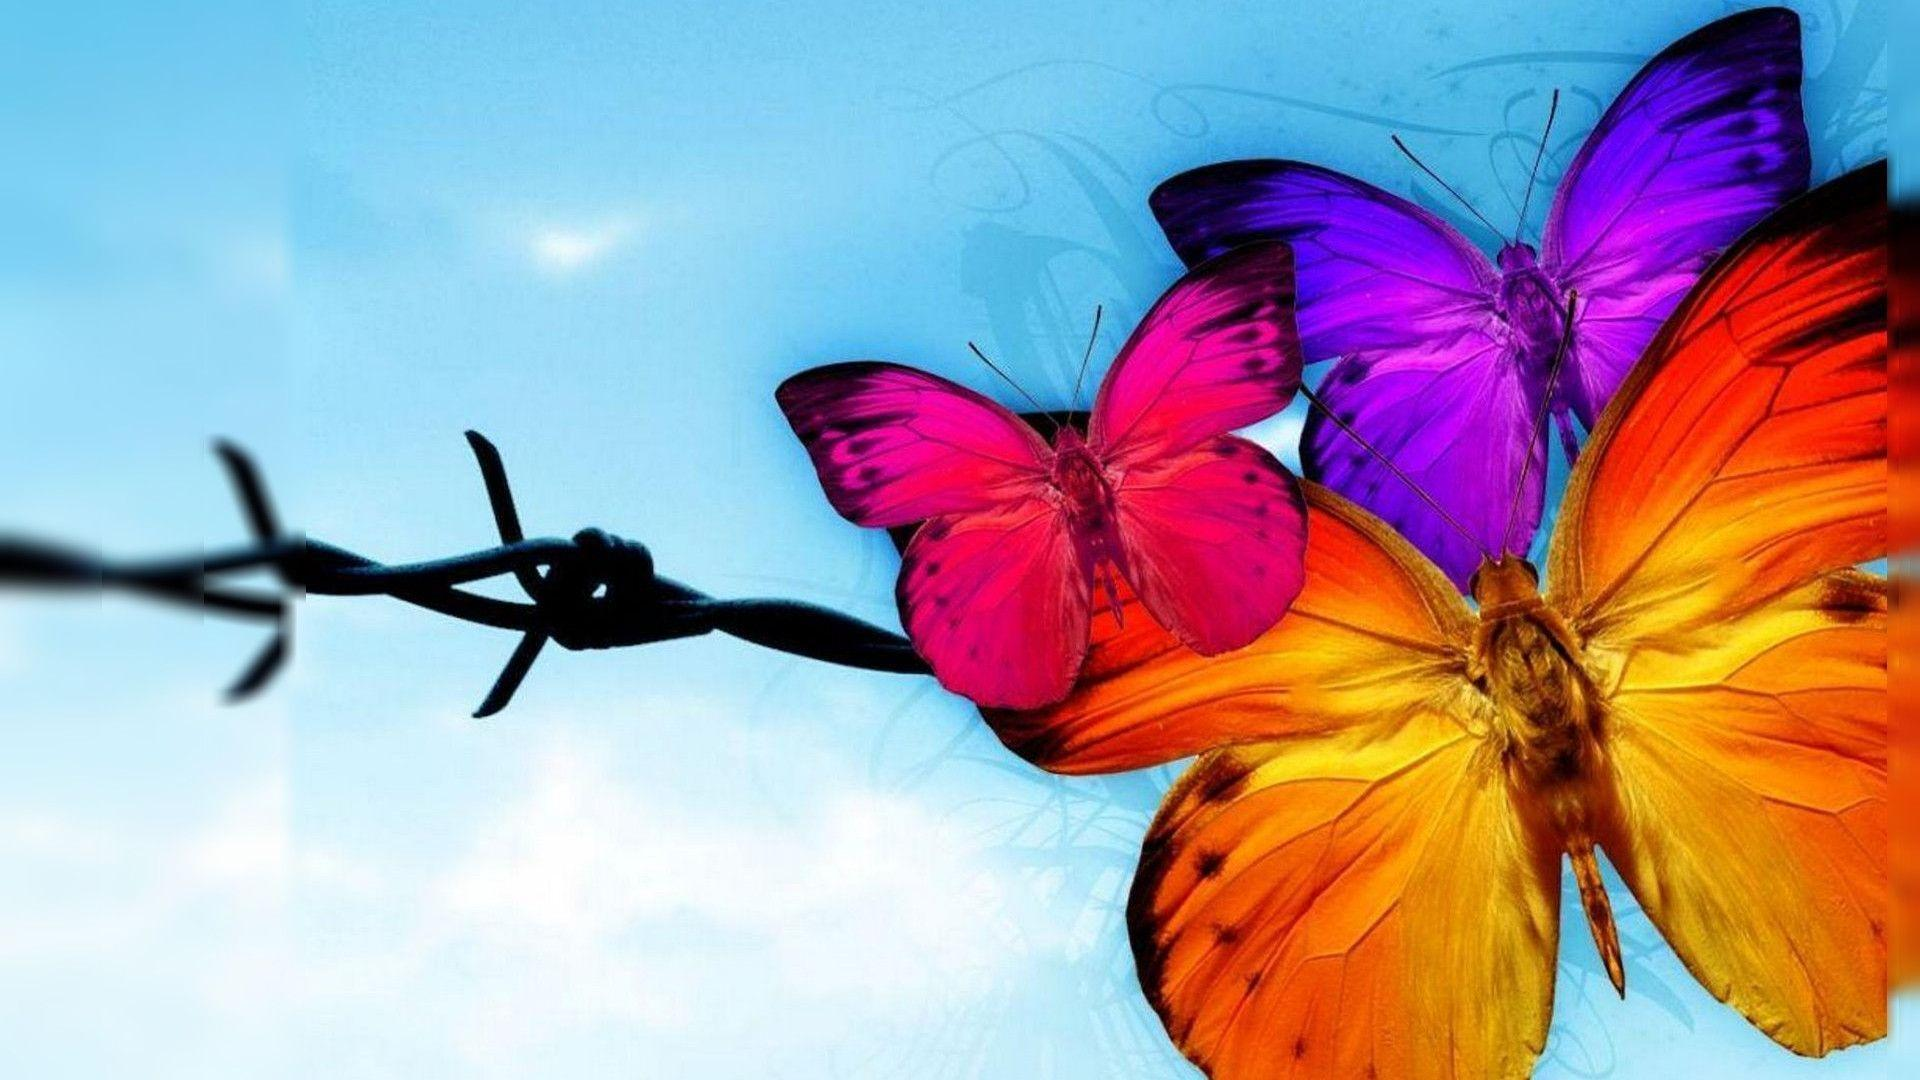 butterfly hq wallpaper 1024x768 - photo #19